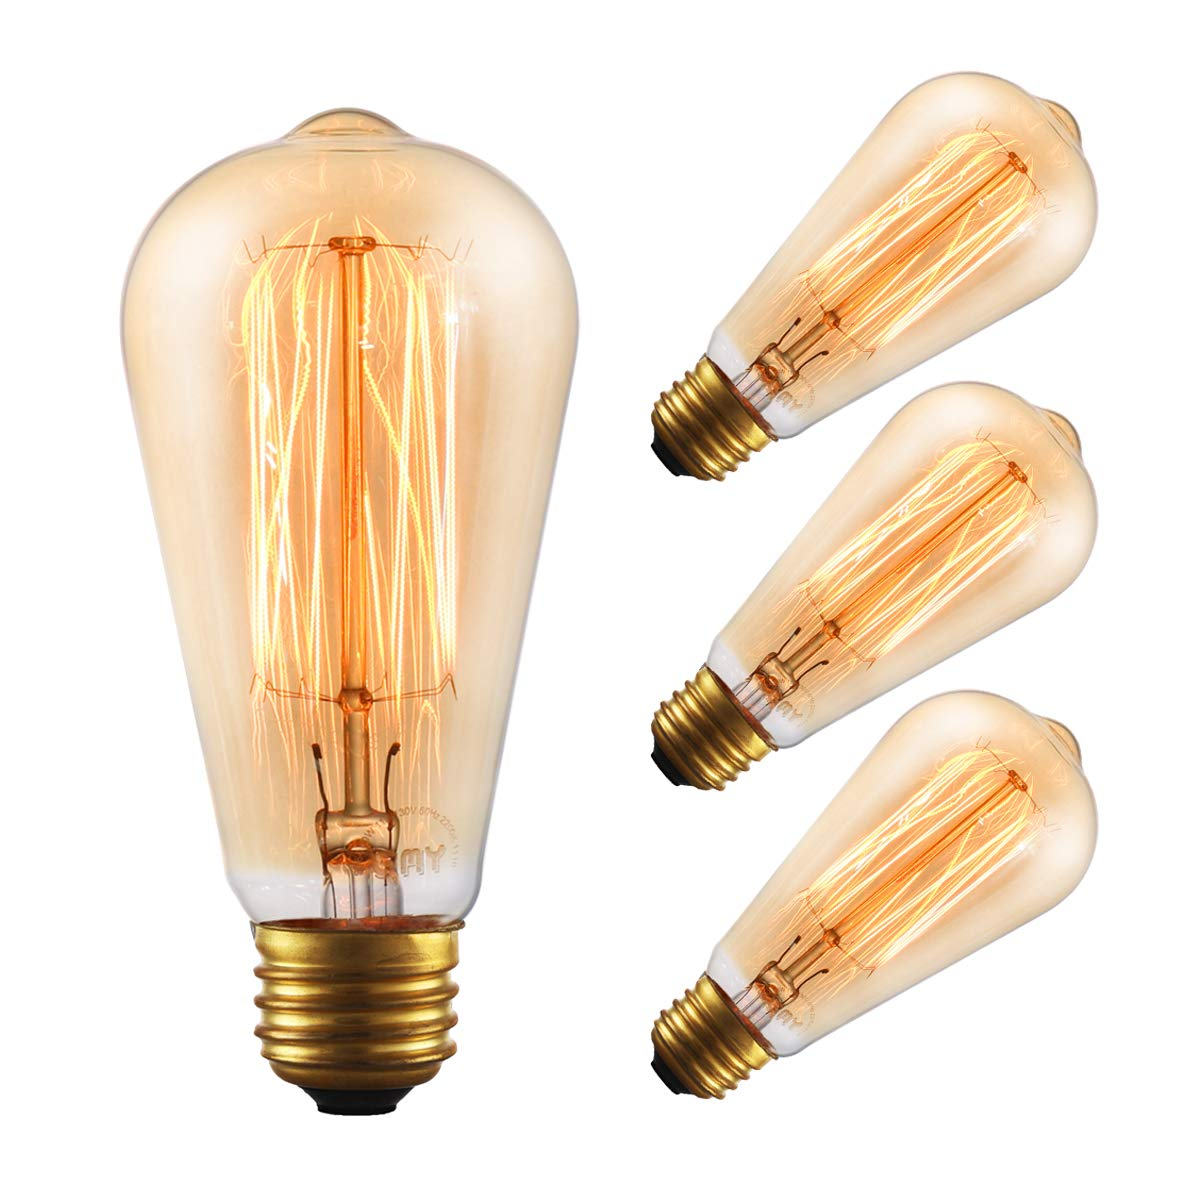 4-Pack Vintage Amber Glass Tungsten Edison Light Bulb ST64 60W Warm White 2200K, GMY Lighting